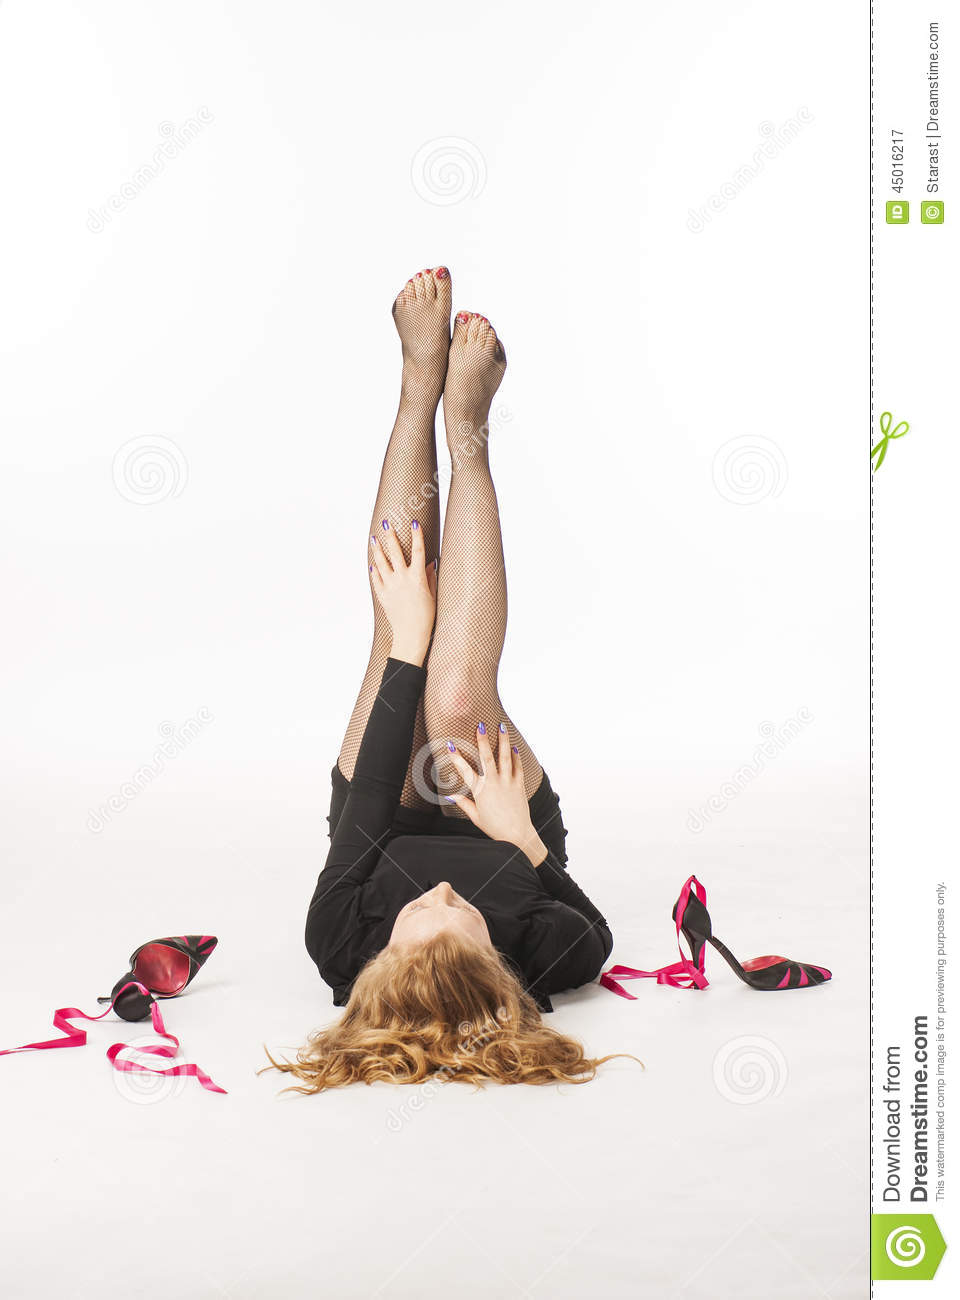 Pain In The Legs After Walking In High Heels Stock Photo